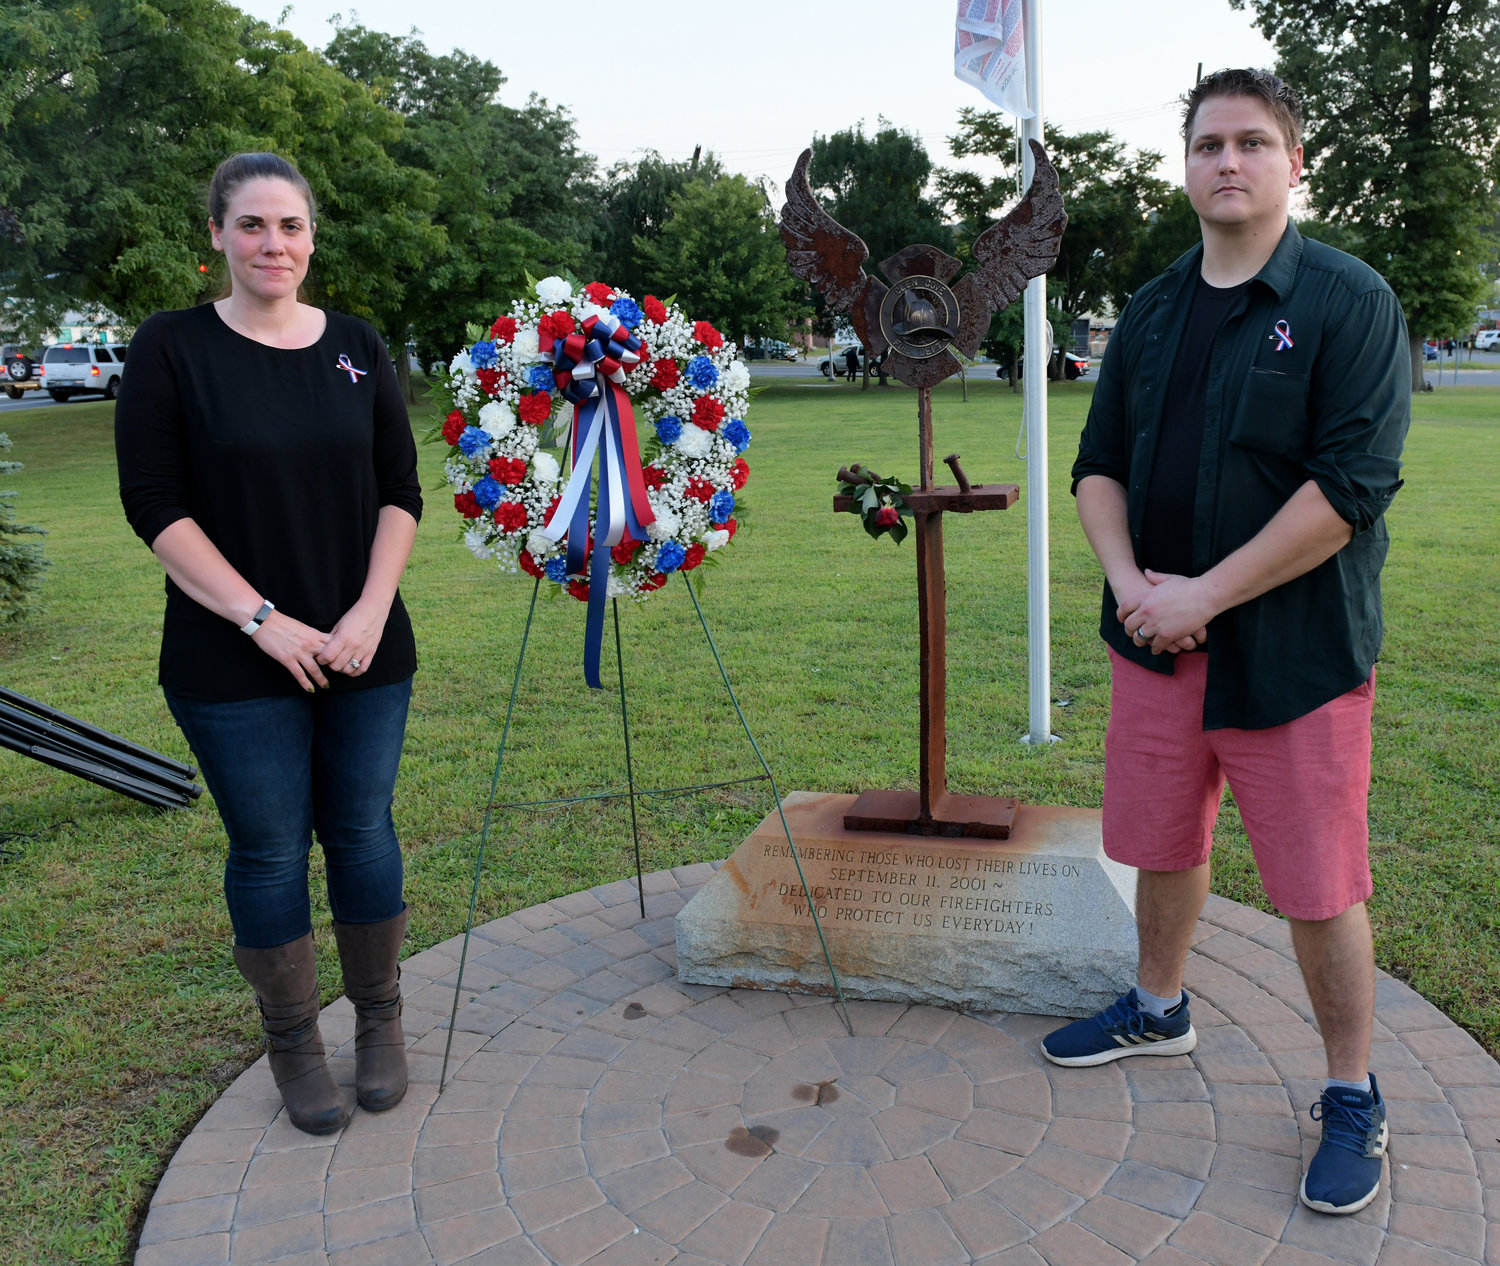 Michele Puckett-Formolo and her husband, Michael, joined the ceremony in honor of her father, John, one of city's four residents who died in the attack.